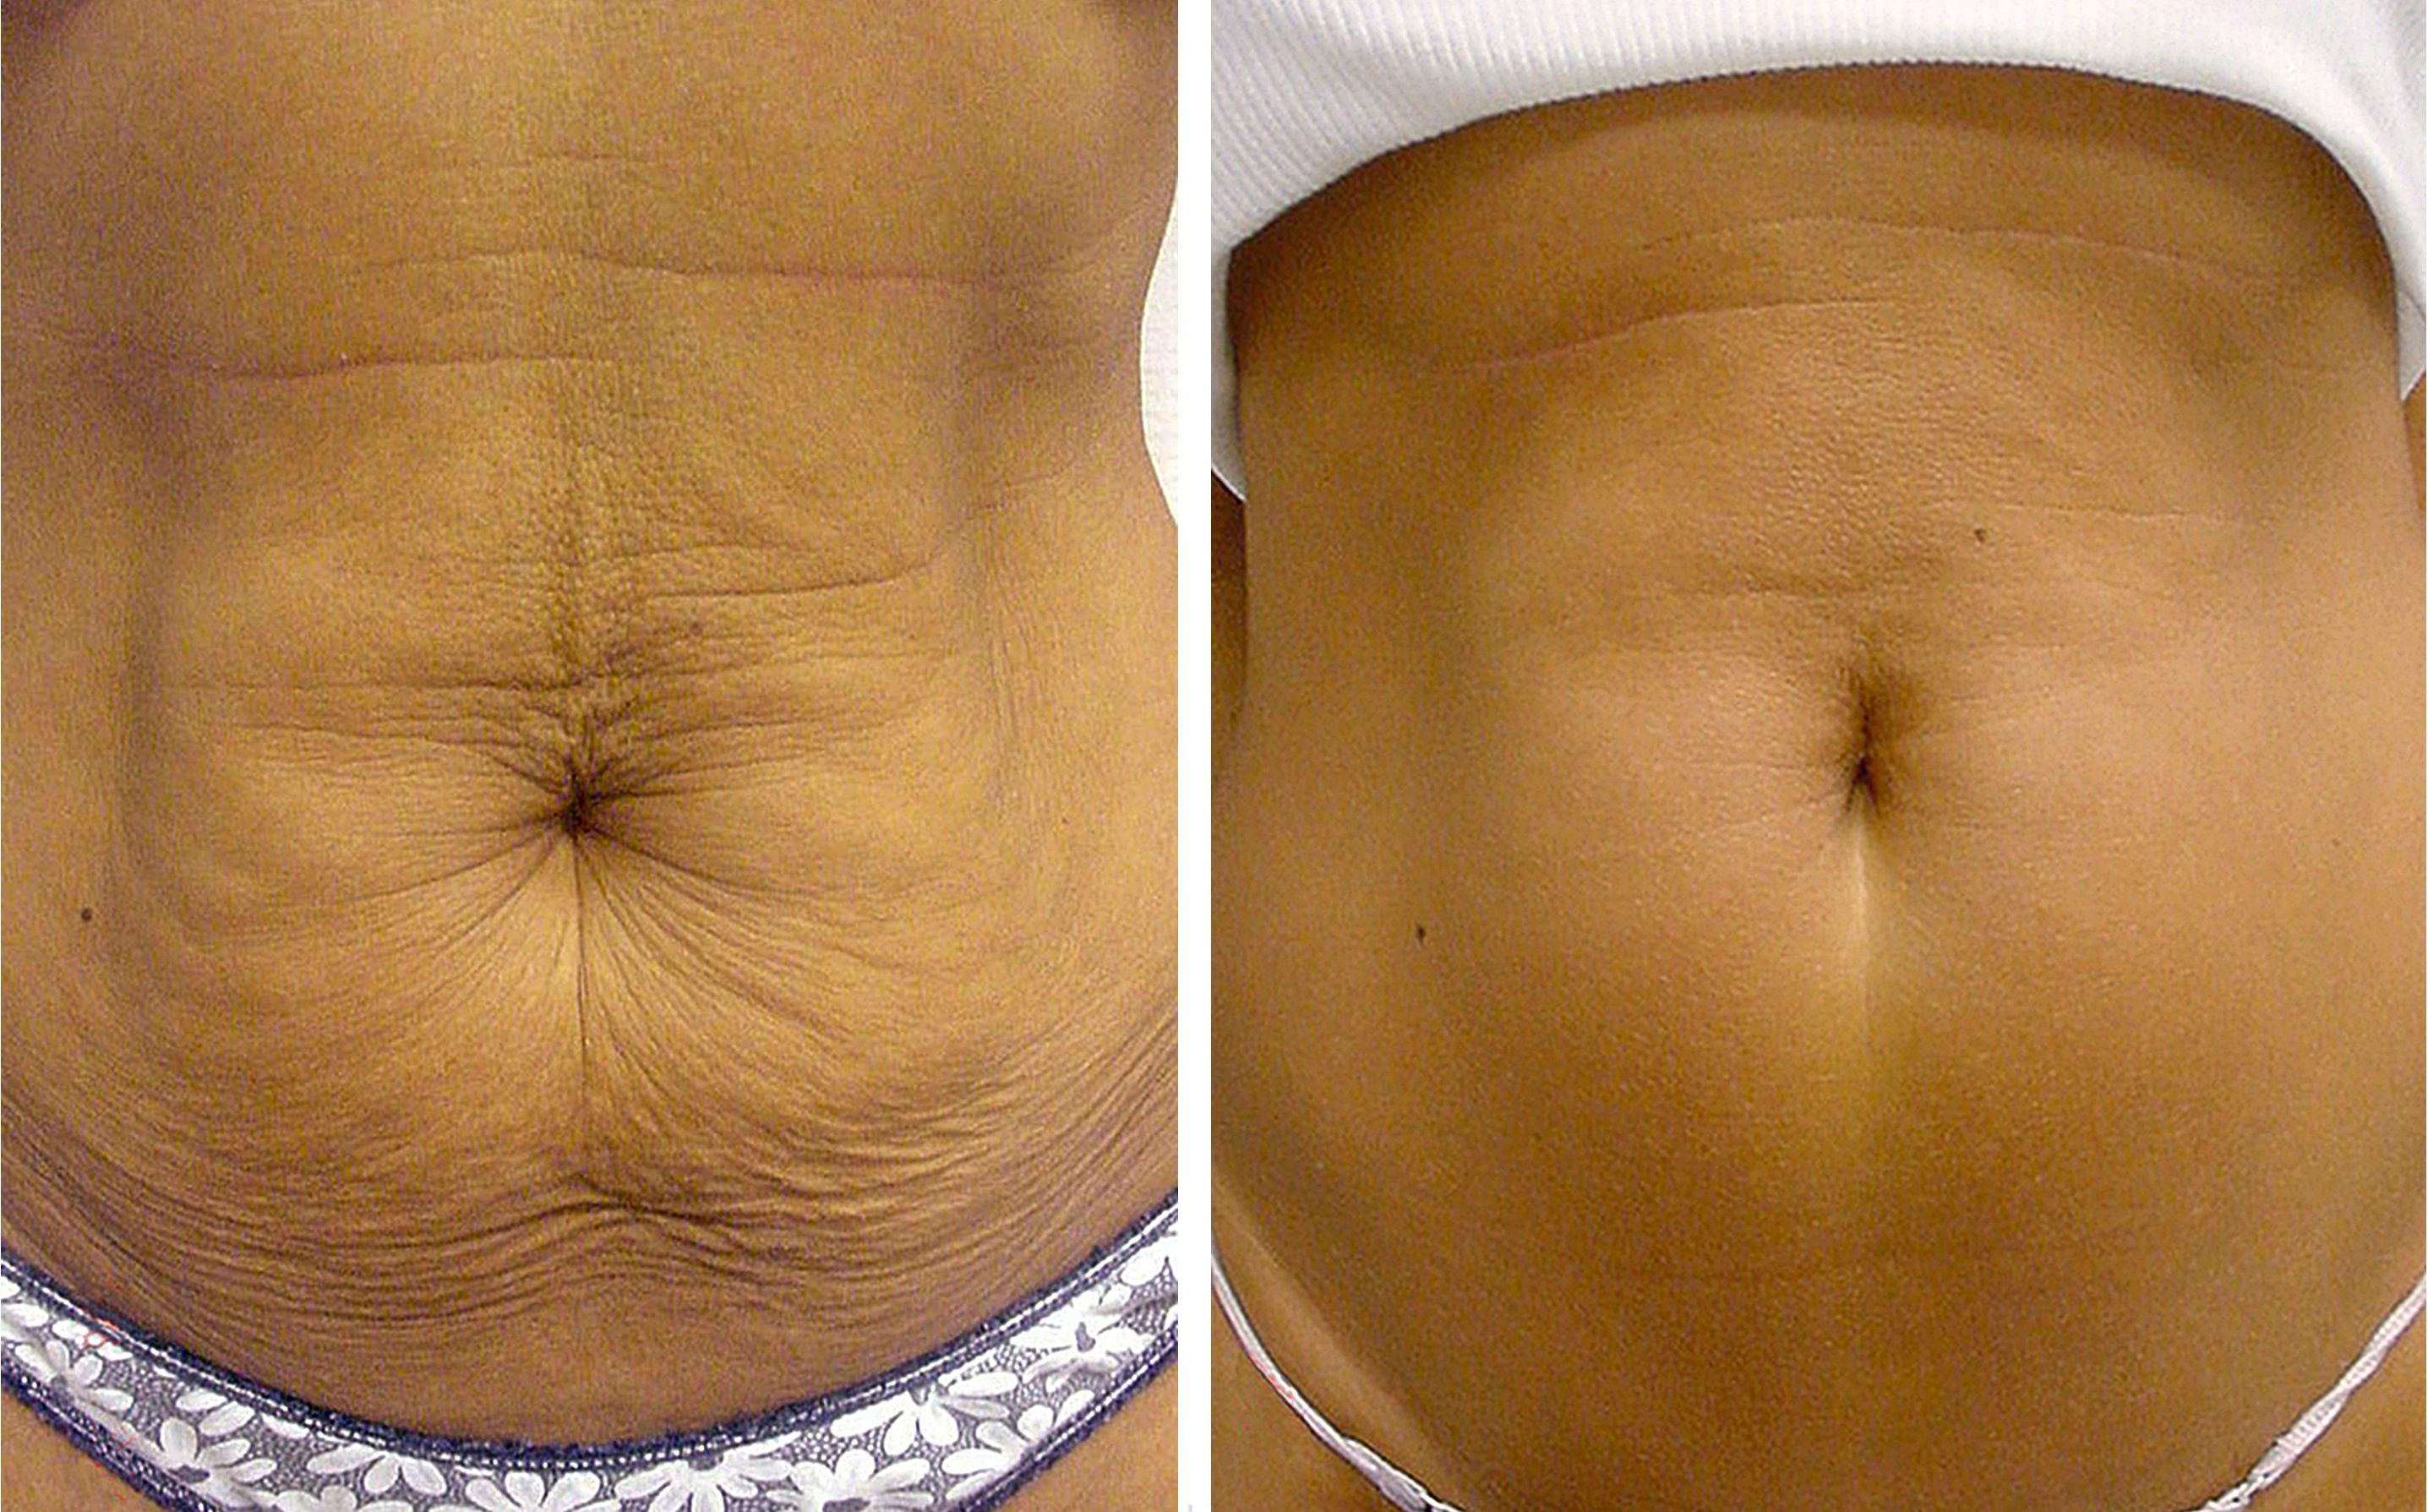 Shape Up Your Body With Stomach Skin Tightening Method Saggy Skin Loose Skin Natural Skin Tightening